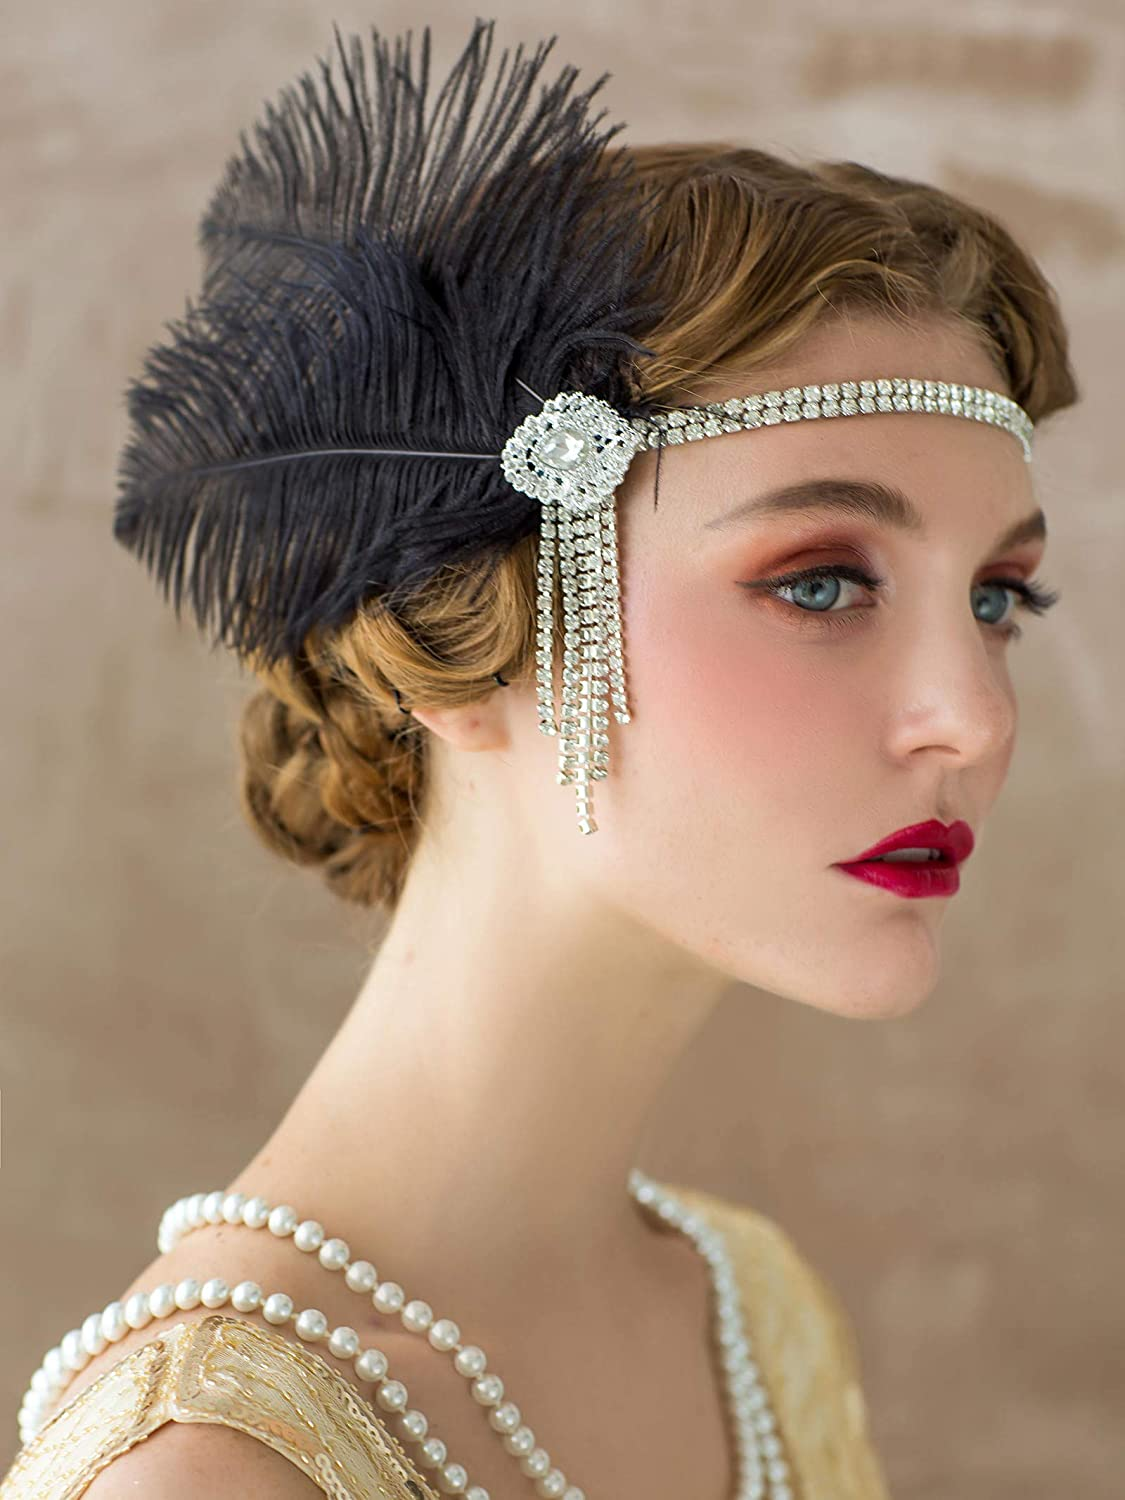 1920s Headband, Headpiece & Hair Accessory Styles SWEETV Flapper Headbands Womens 1920s Headpiece Great Gatsby Inspired Feather Headband Cocktail Party Rhinestone Hair Accessories for Women Black $13.99 AT vintagedancer.com